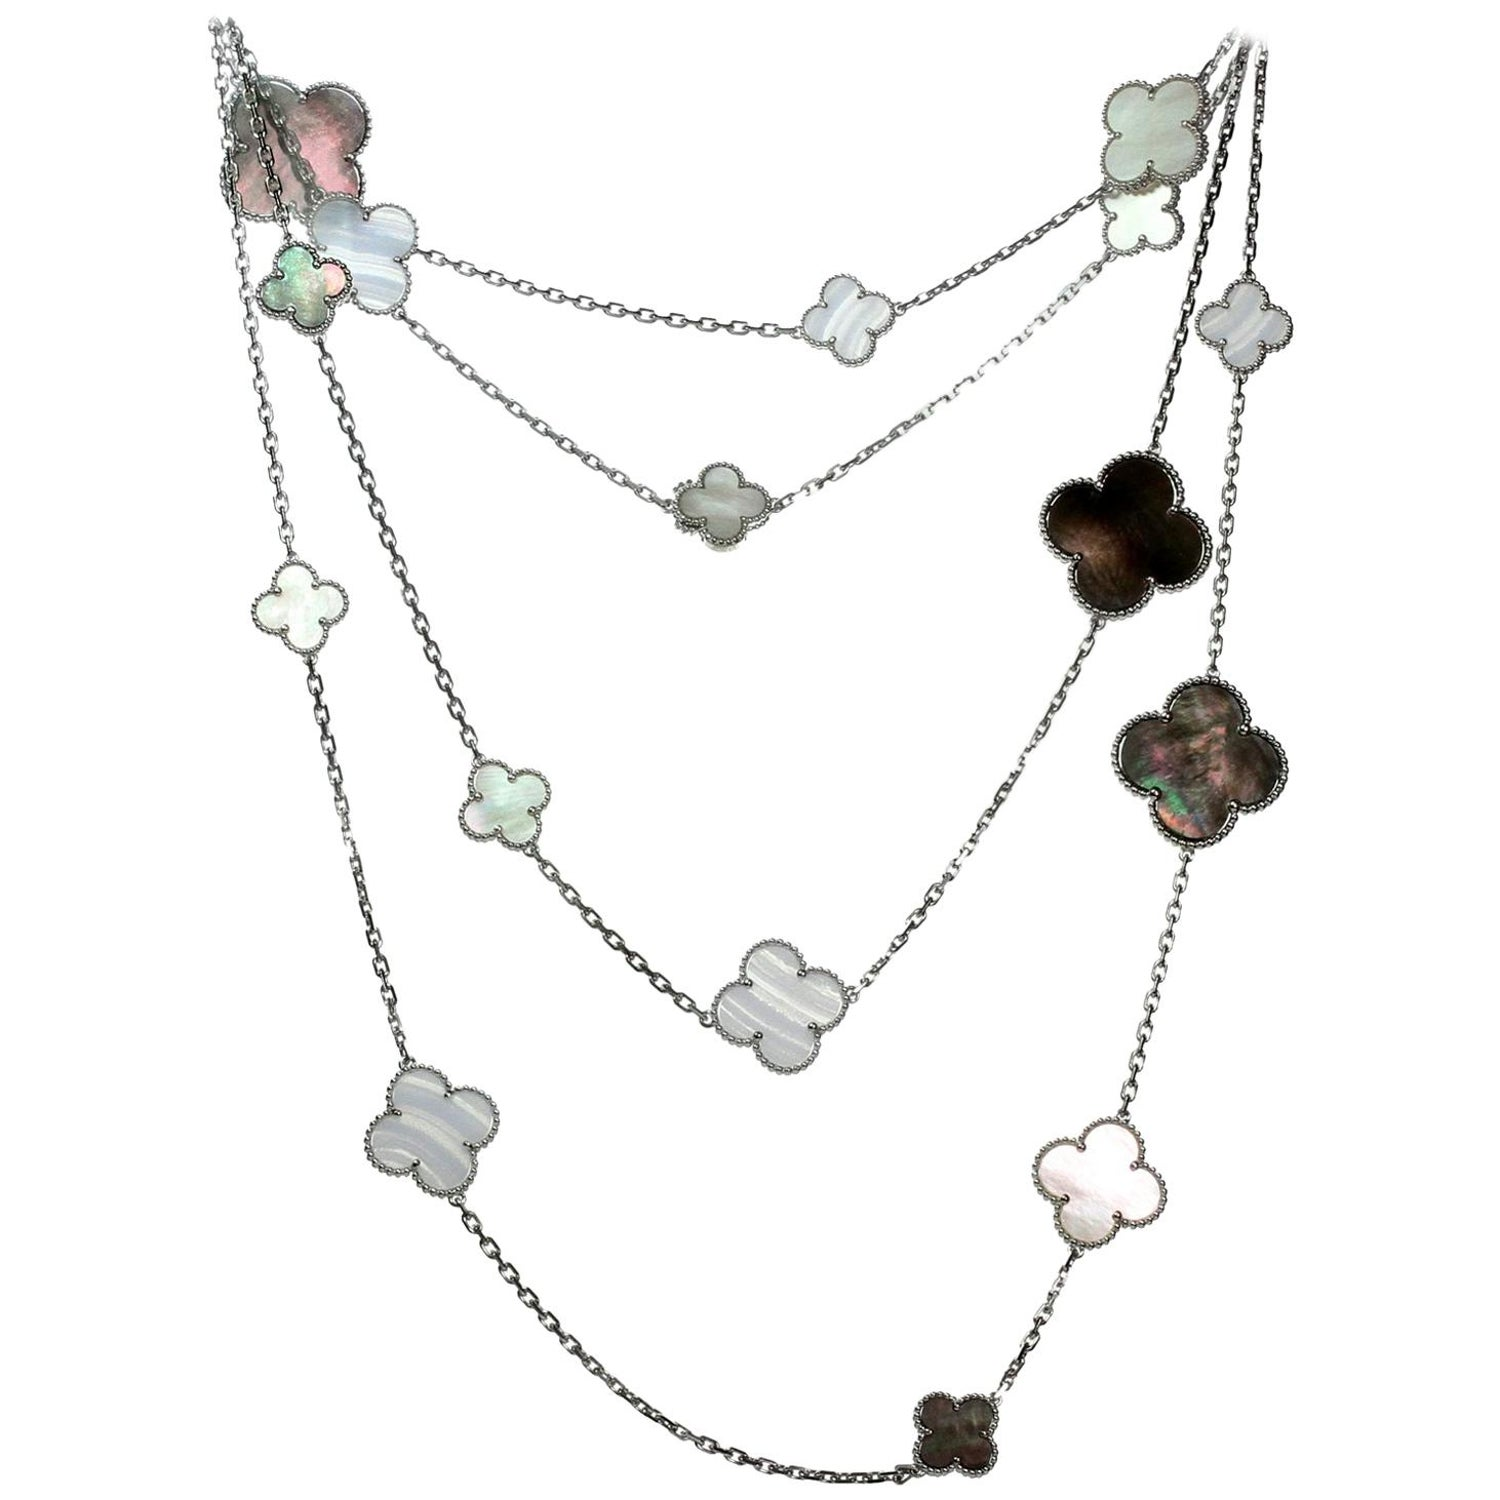 ed6faf9b6c06 Van Cleef and Arpels Magic Alhambra 16 Motif Chalcedony Mother-of-Pearl  Necklace For Sale at 1stdibs